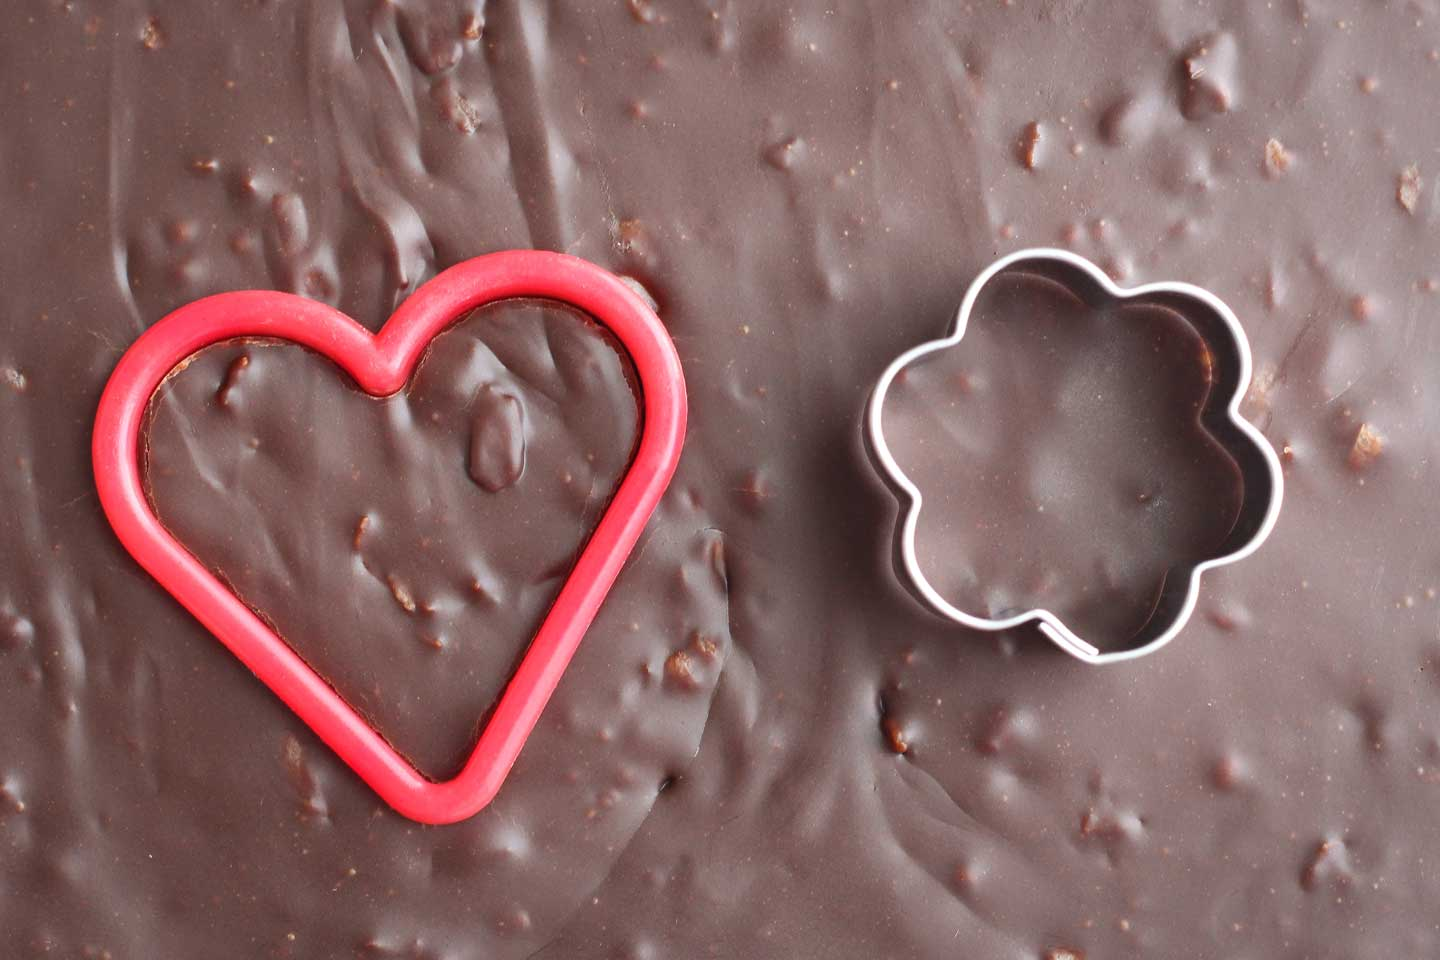 Closeup of two cookie cutters - a heart and a flower - cutting into the top of the finished pan of chocolate fudge.